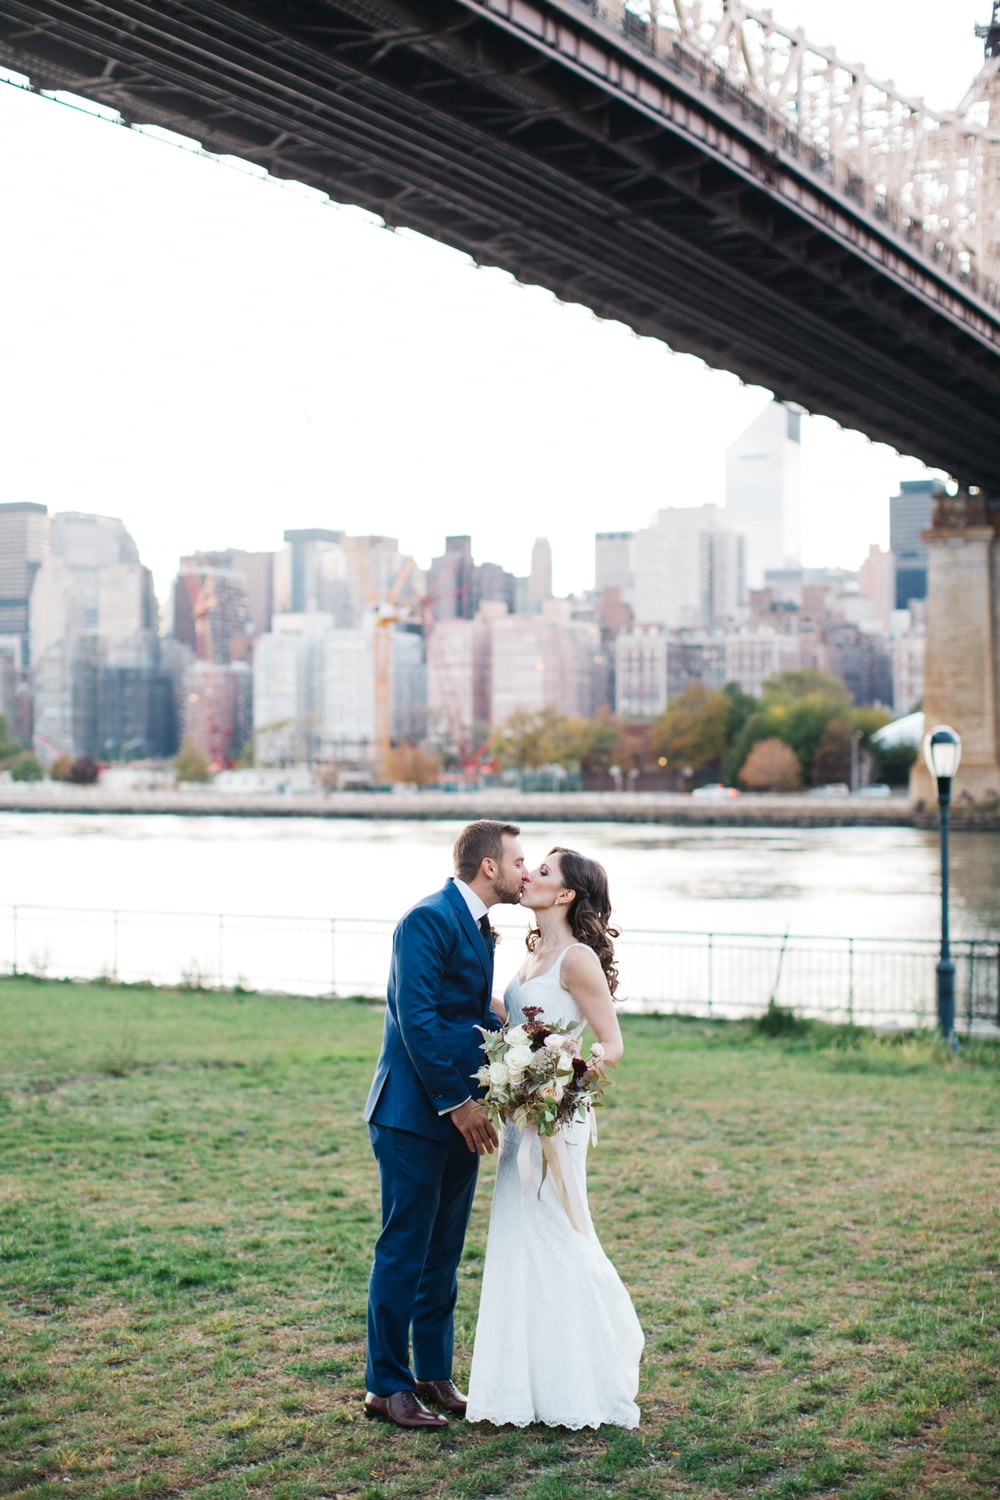 CHRIS AND KIM NEW YORK WEDDING THE FOUNDRY-36.jpg